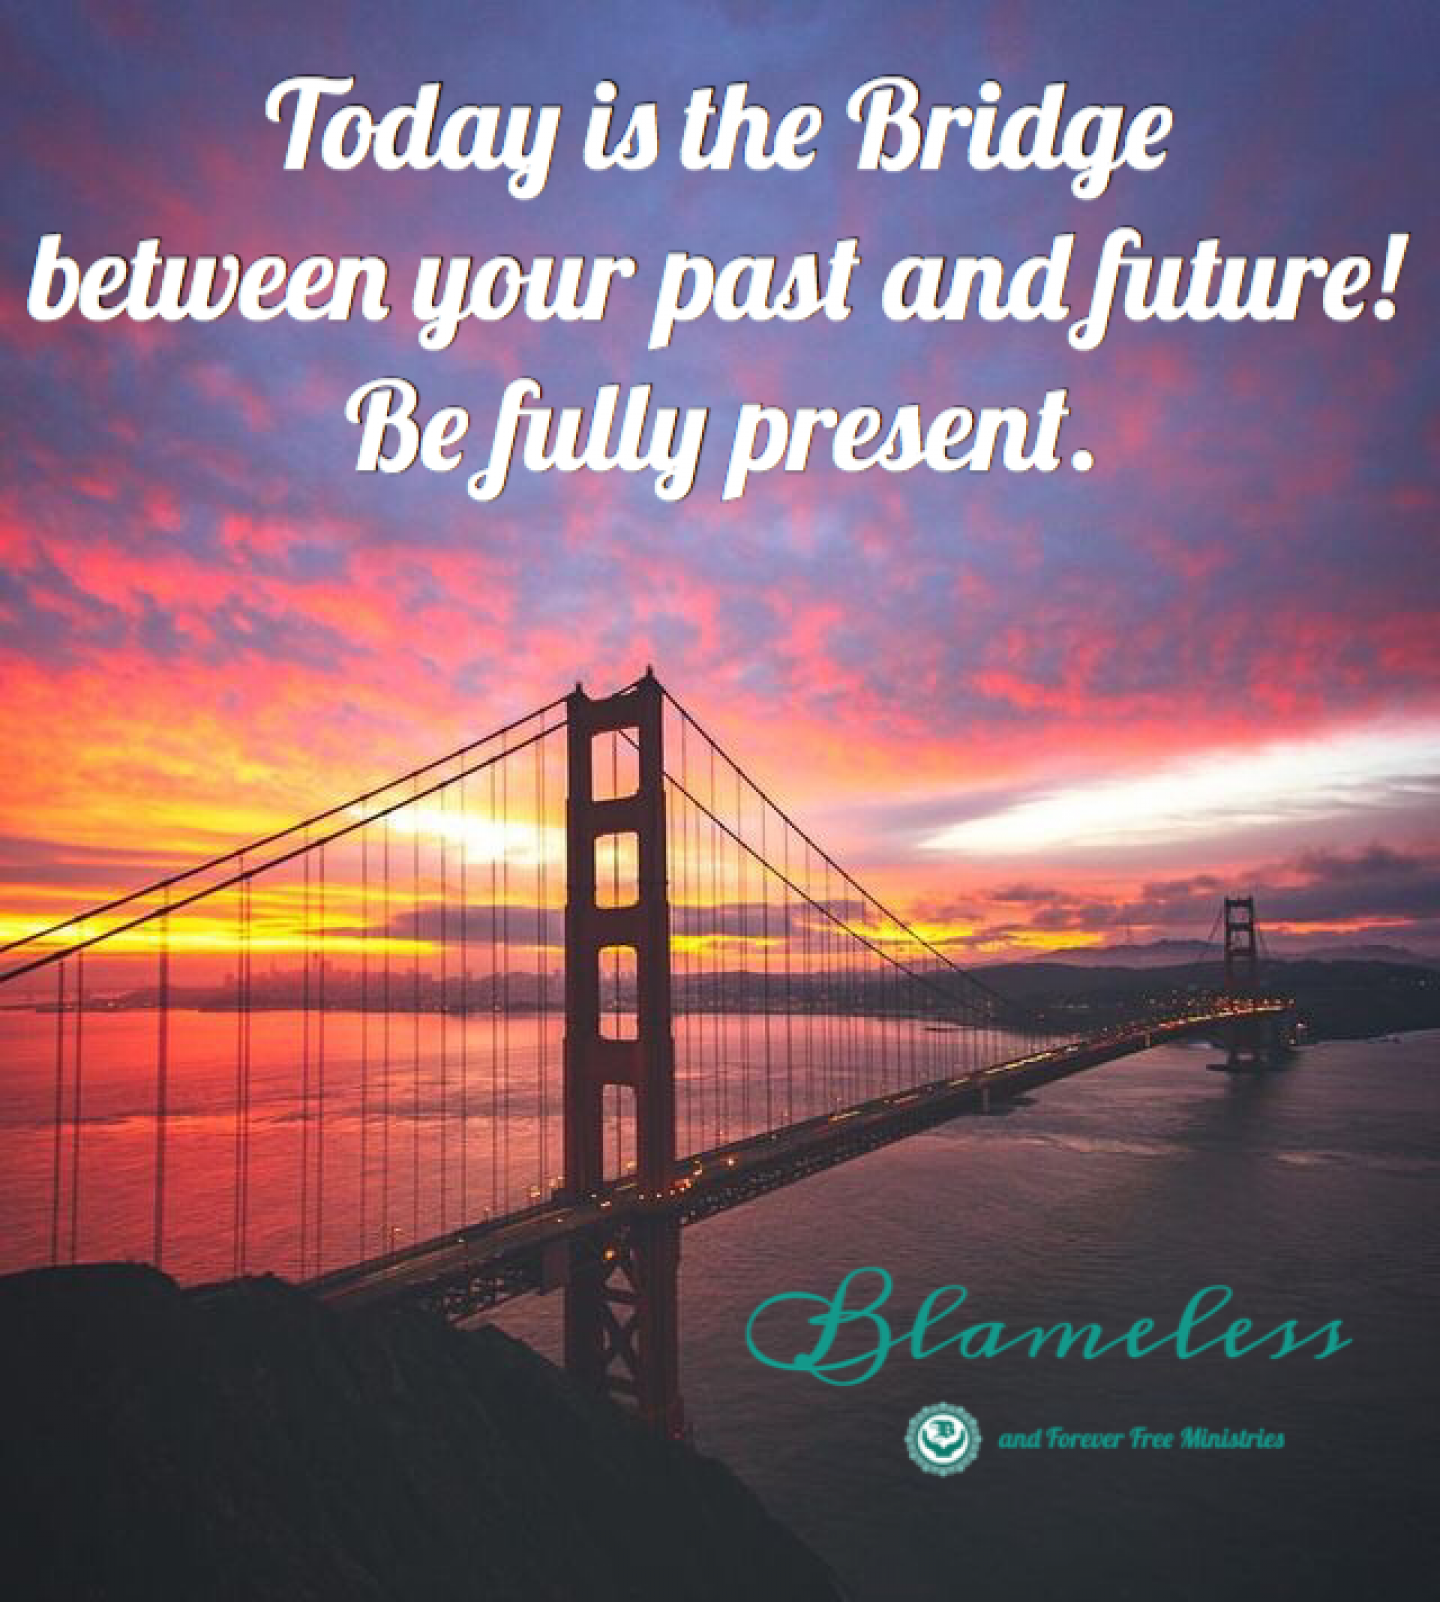 Blameless Bridge Between Past and Future